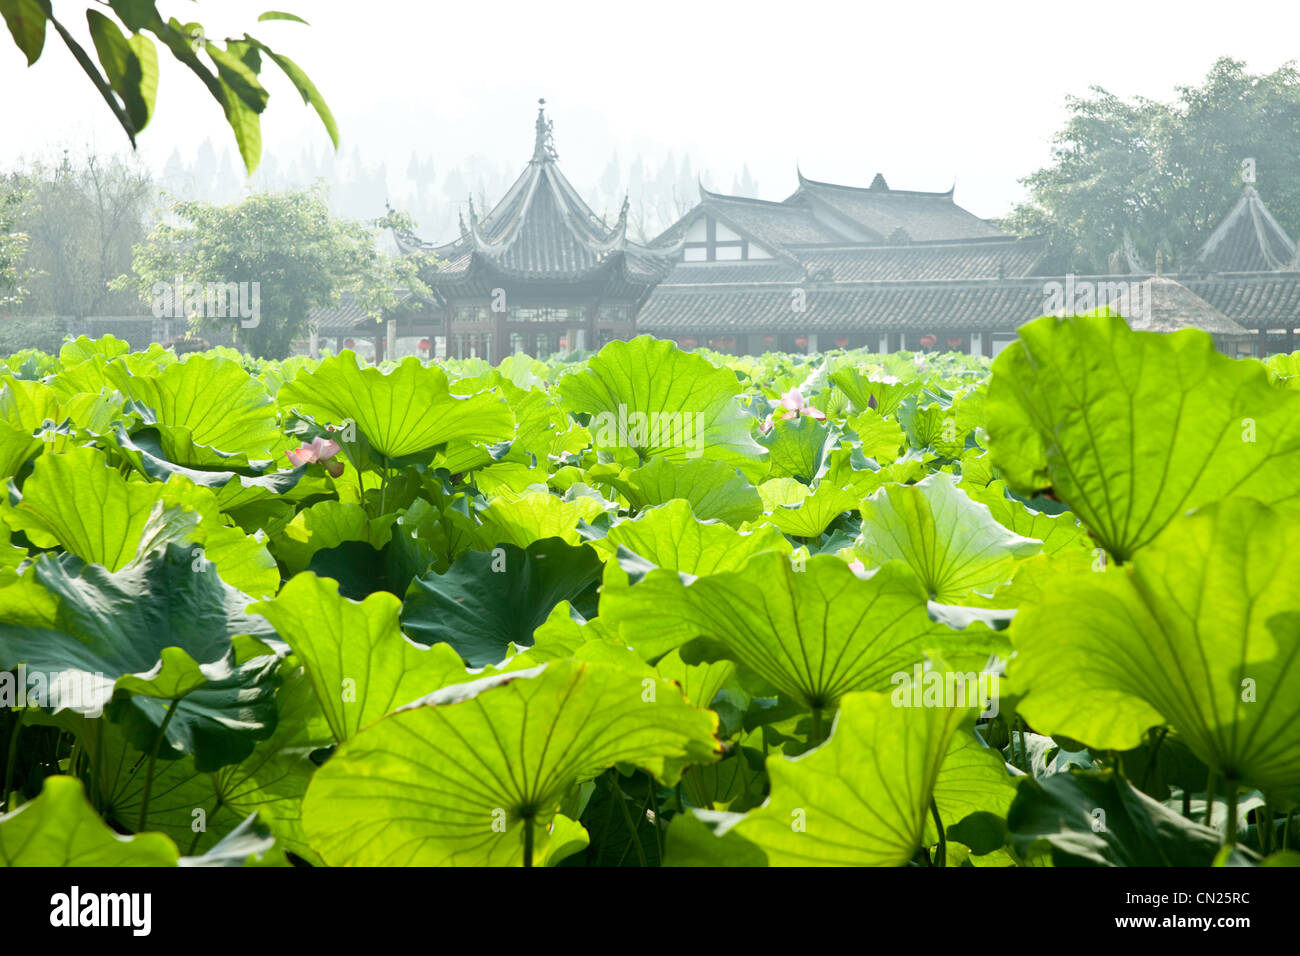 Lotus leaves with traditional Chinese buildings in background - Stock Image